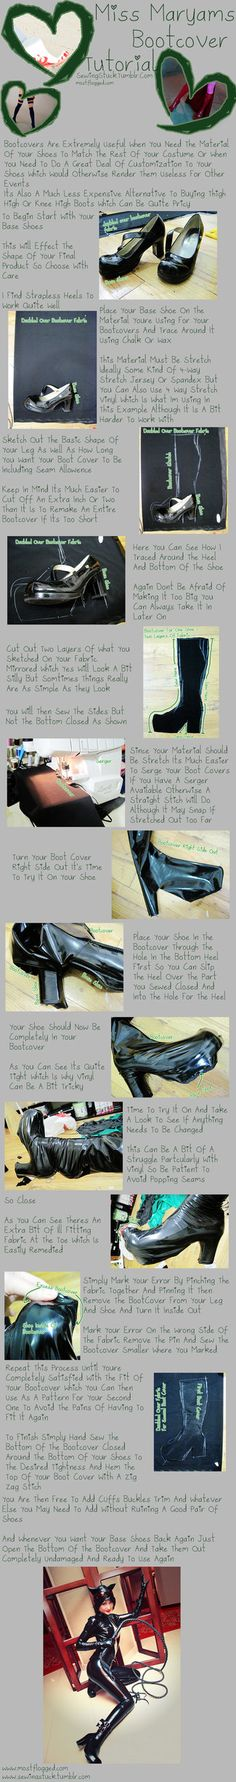 Sewingstuck - Bootcover Tutorial by *Mostflogged on deviantART